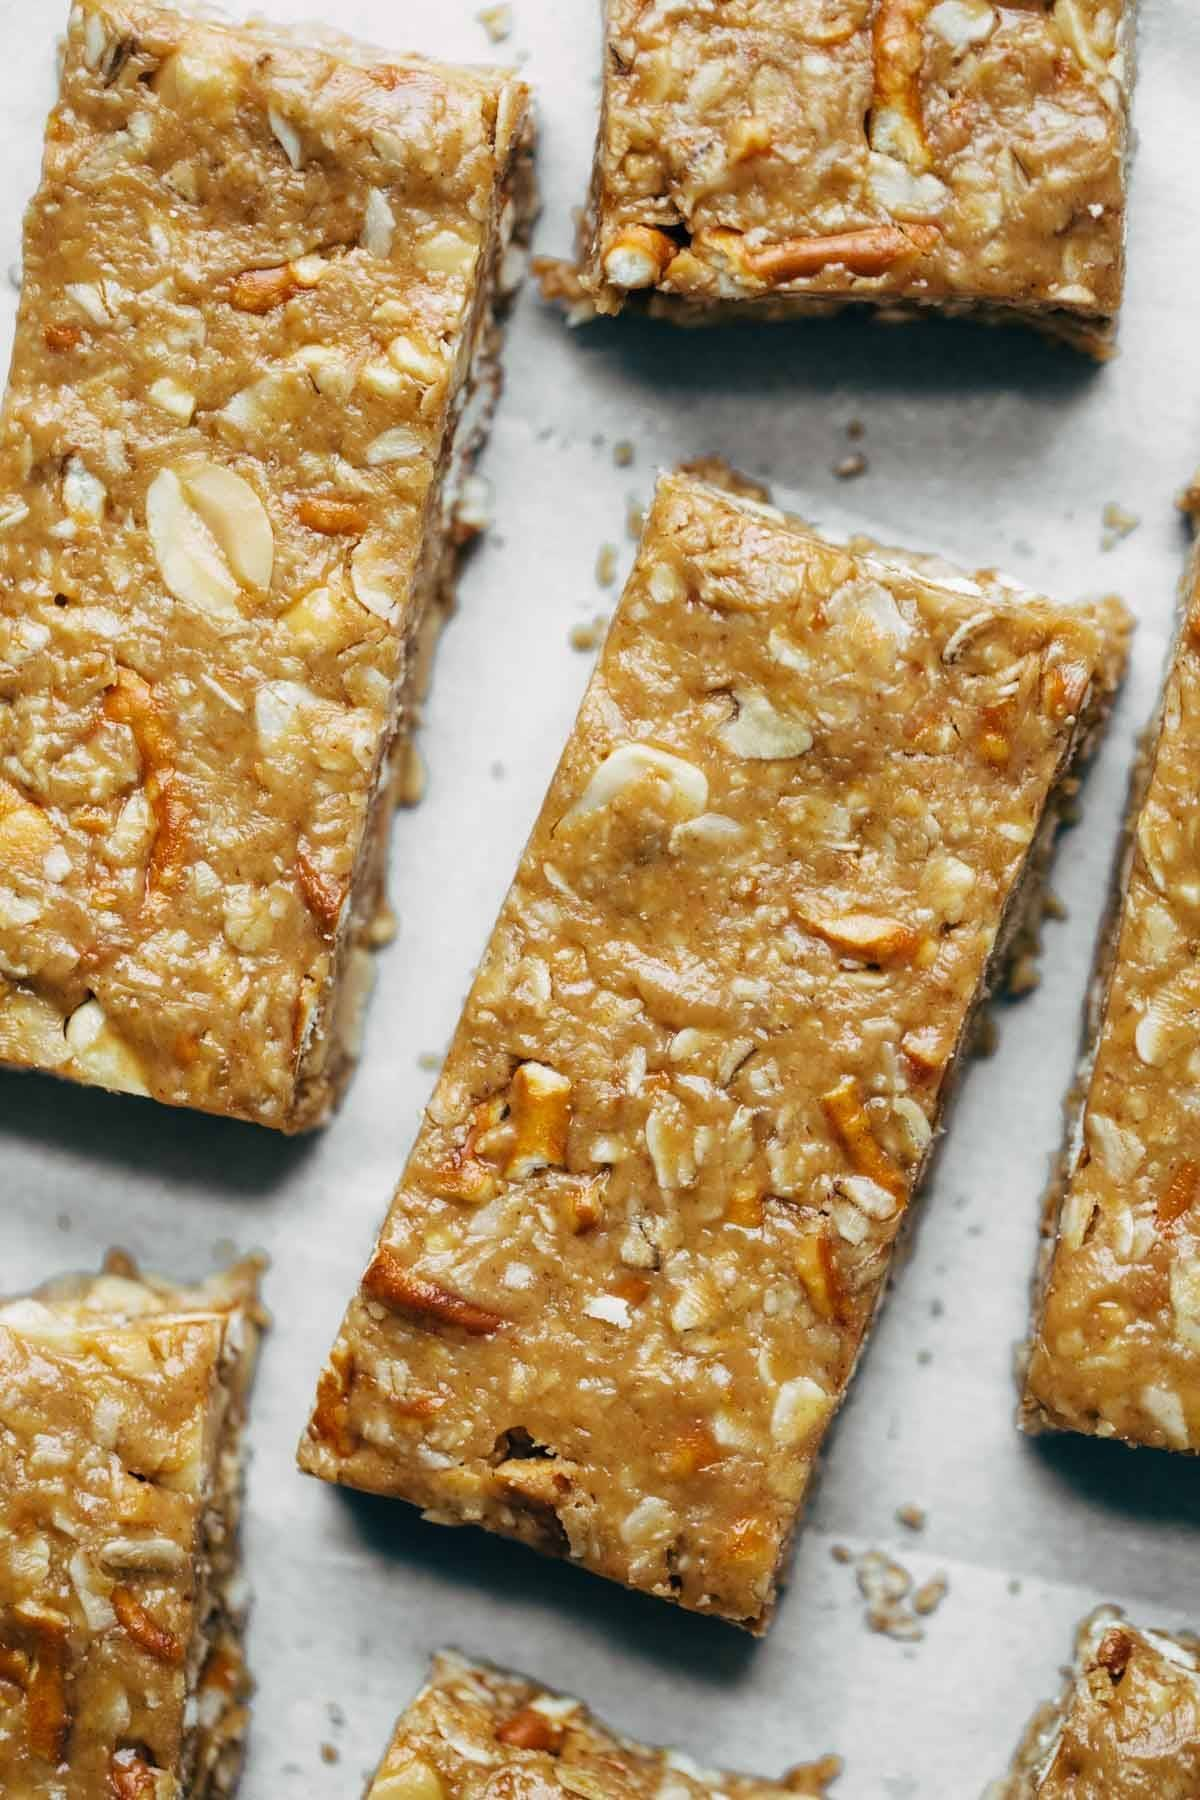 Granola bars on parchment paper.